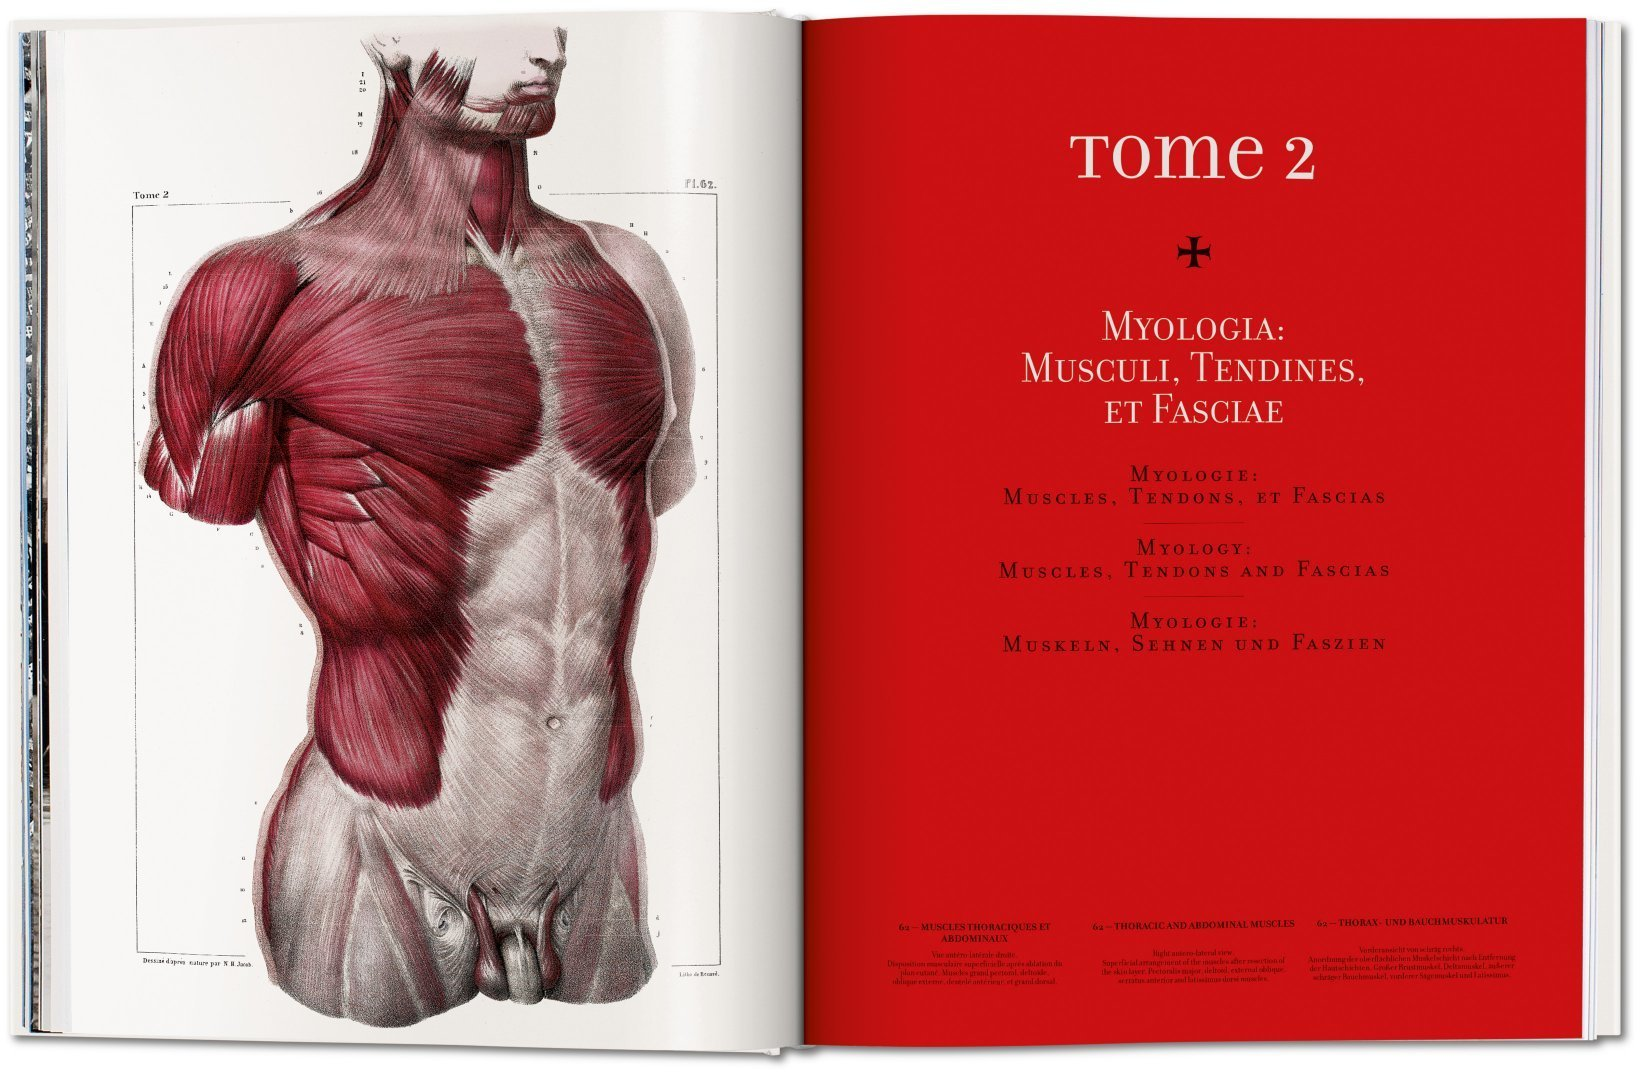 Bourgery Atlas Of Human Anatomy And Surgery Taschen Books